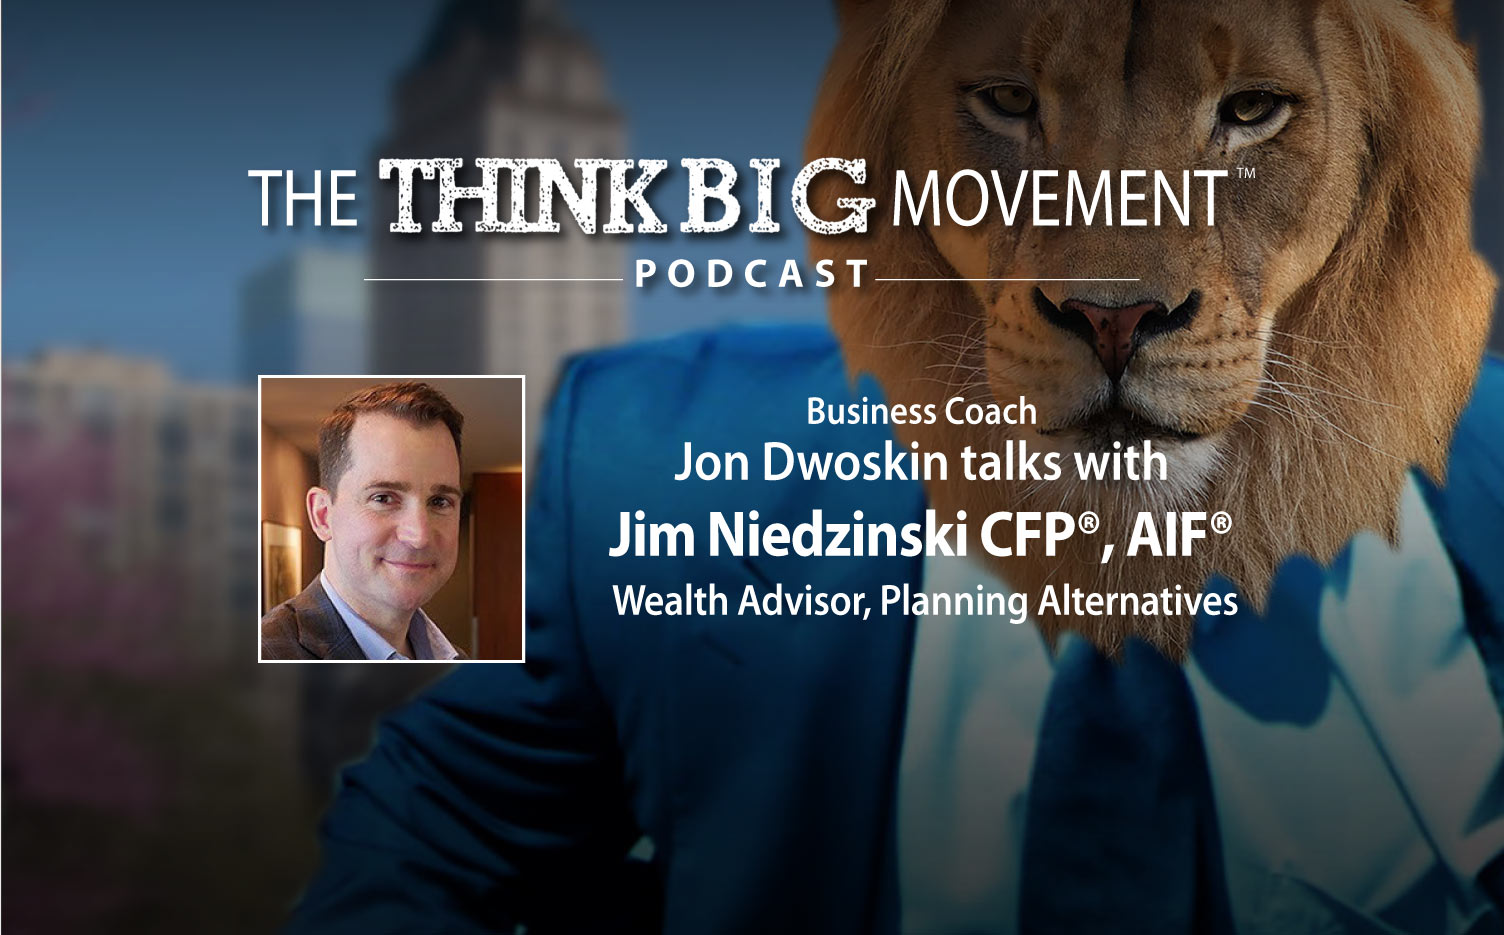 Think Big Movement Podcast: Jon Dwoskin Interviews Jim Niedzinski CFP®, AIF®, Wealth Advisor, Planning Alternatives